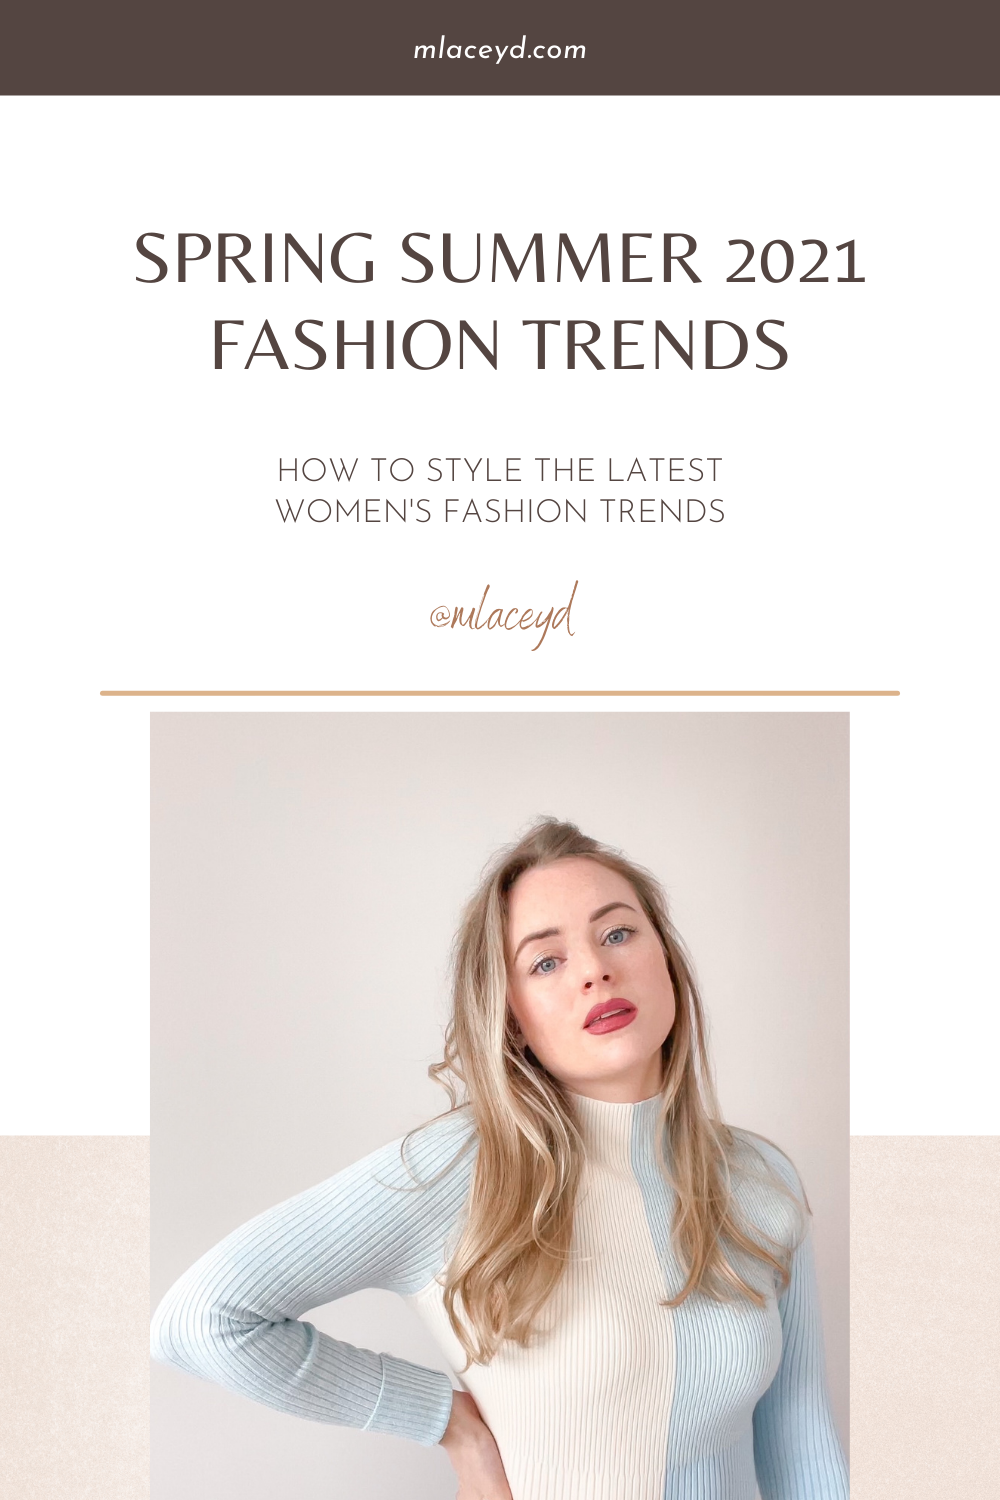 spring summer 2021 fashion trends: how to style the latest trends in women's fashion